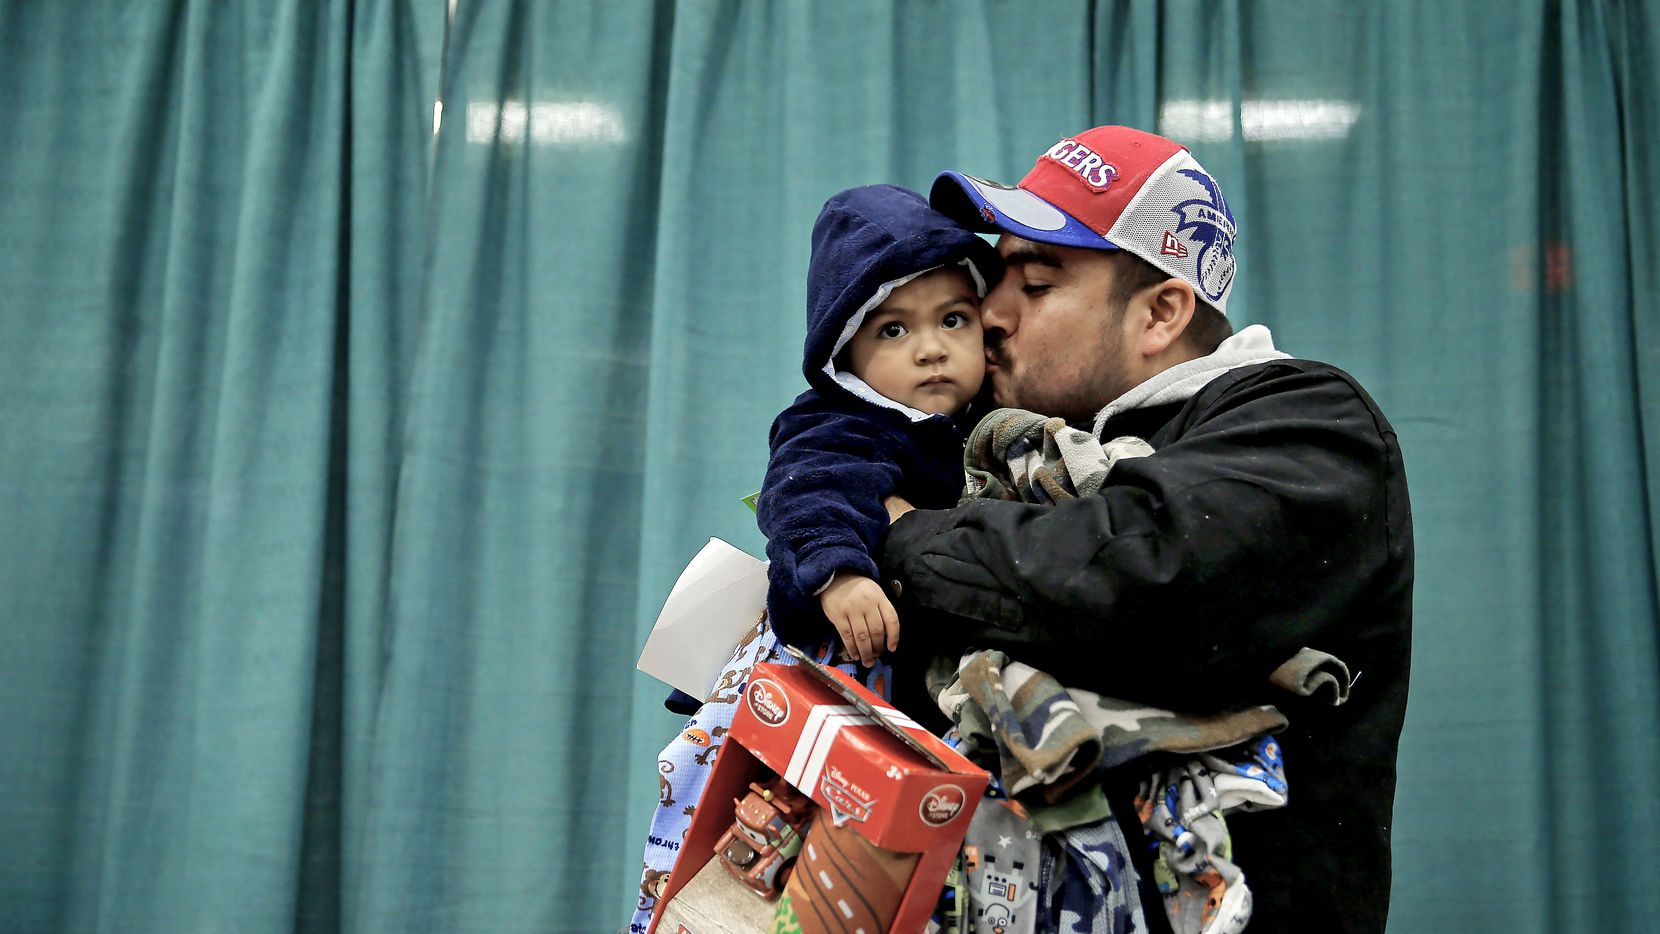 """Jose Gonzalez holds donated gifts as he kisses his son Kareem, 1, during the """"Christmas Gift to the Homeless"""" event in December, 2014 at the Kay Bailey Hutchison Convention Center in Dallas. Operation Care International sponsors the event which provides goods and services to thousands of individuals and families in need."""